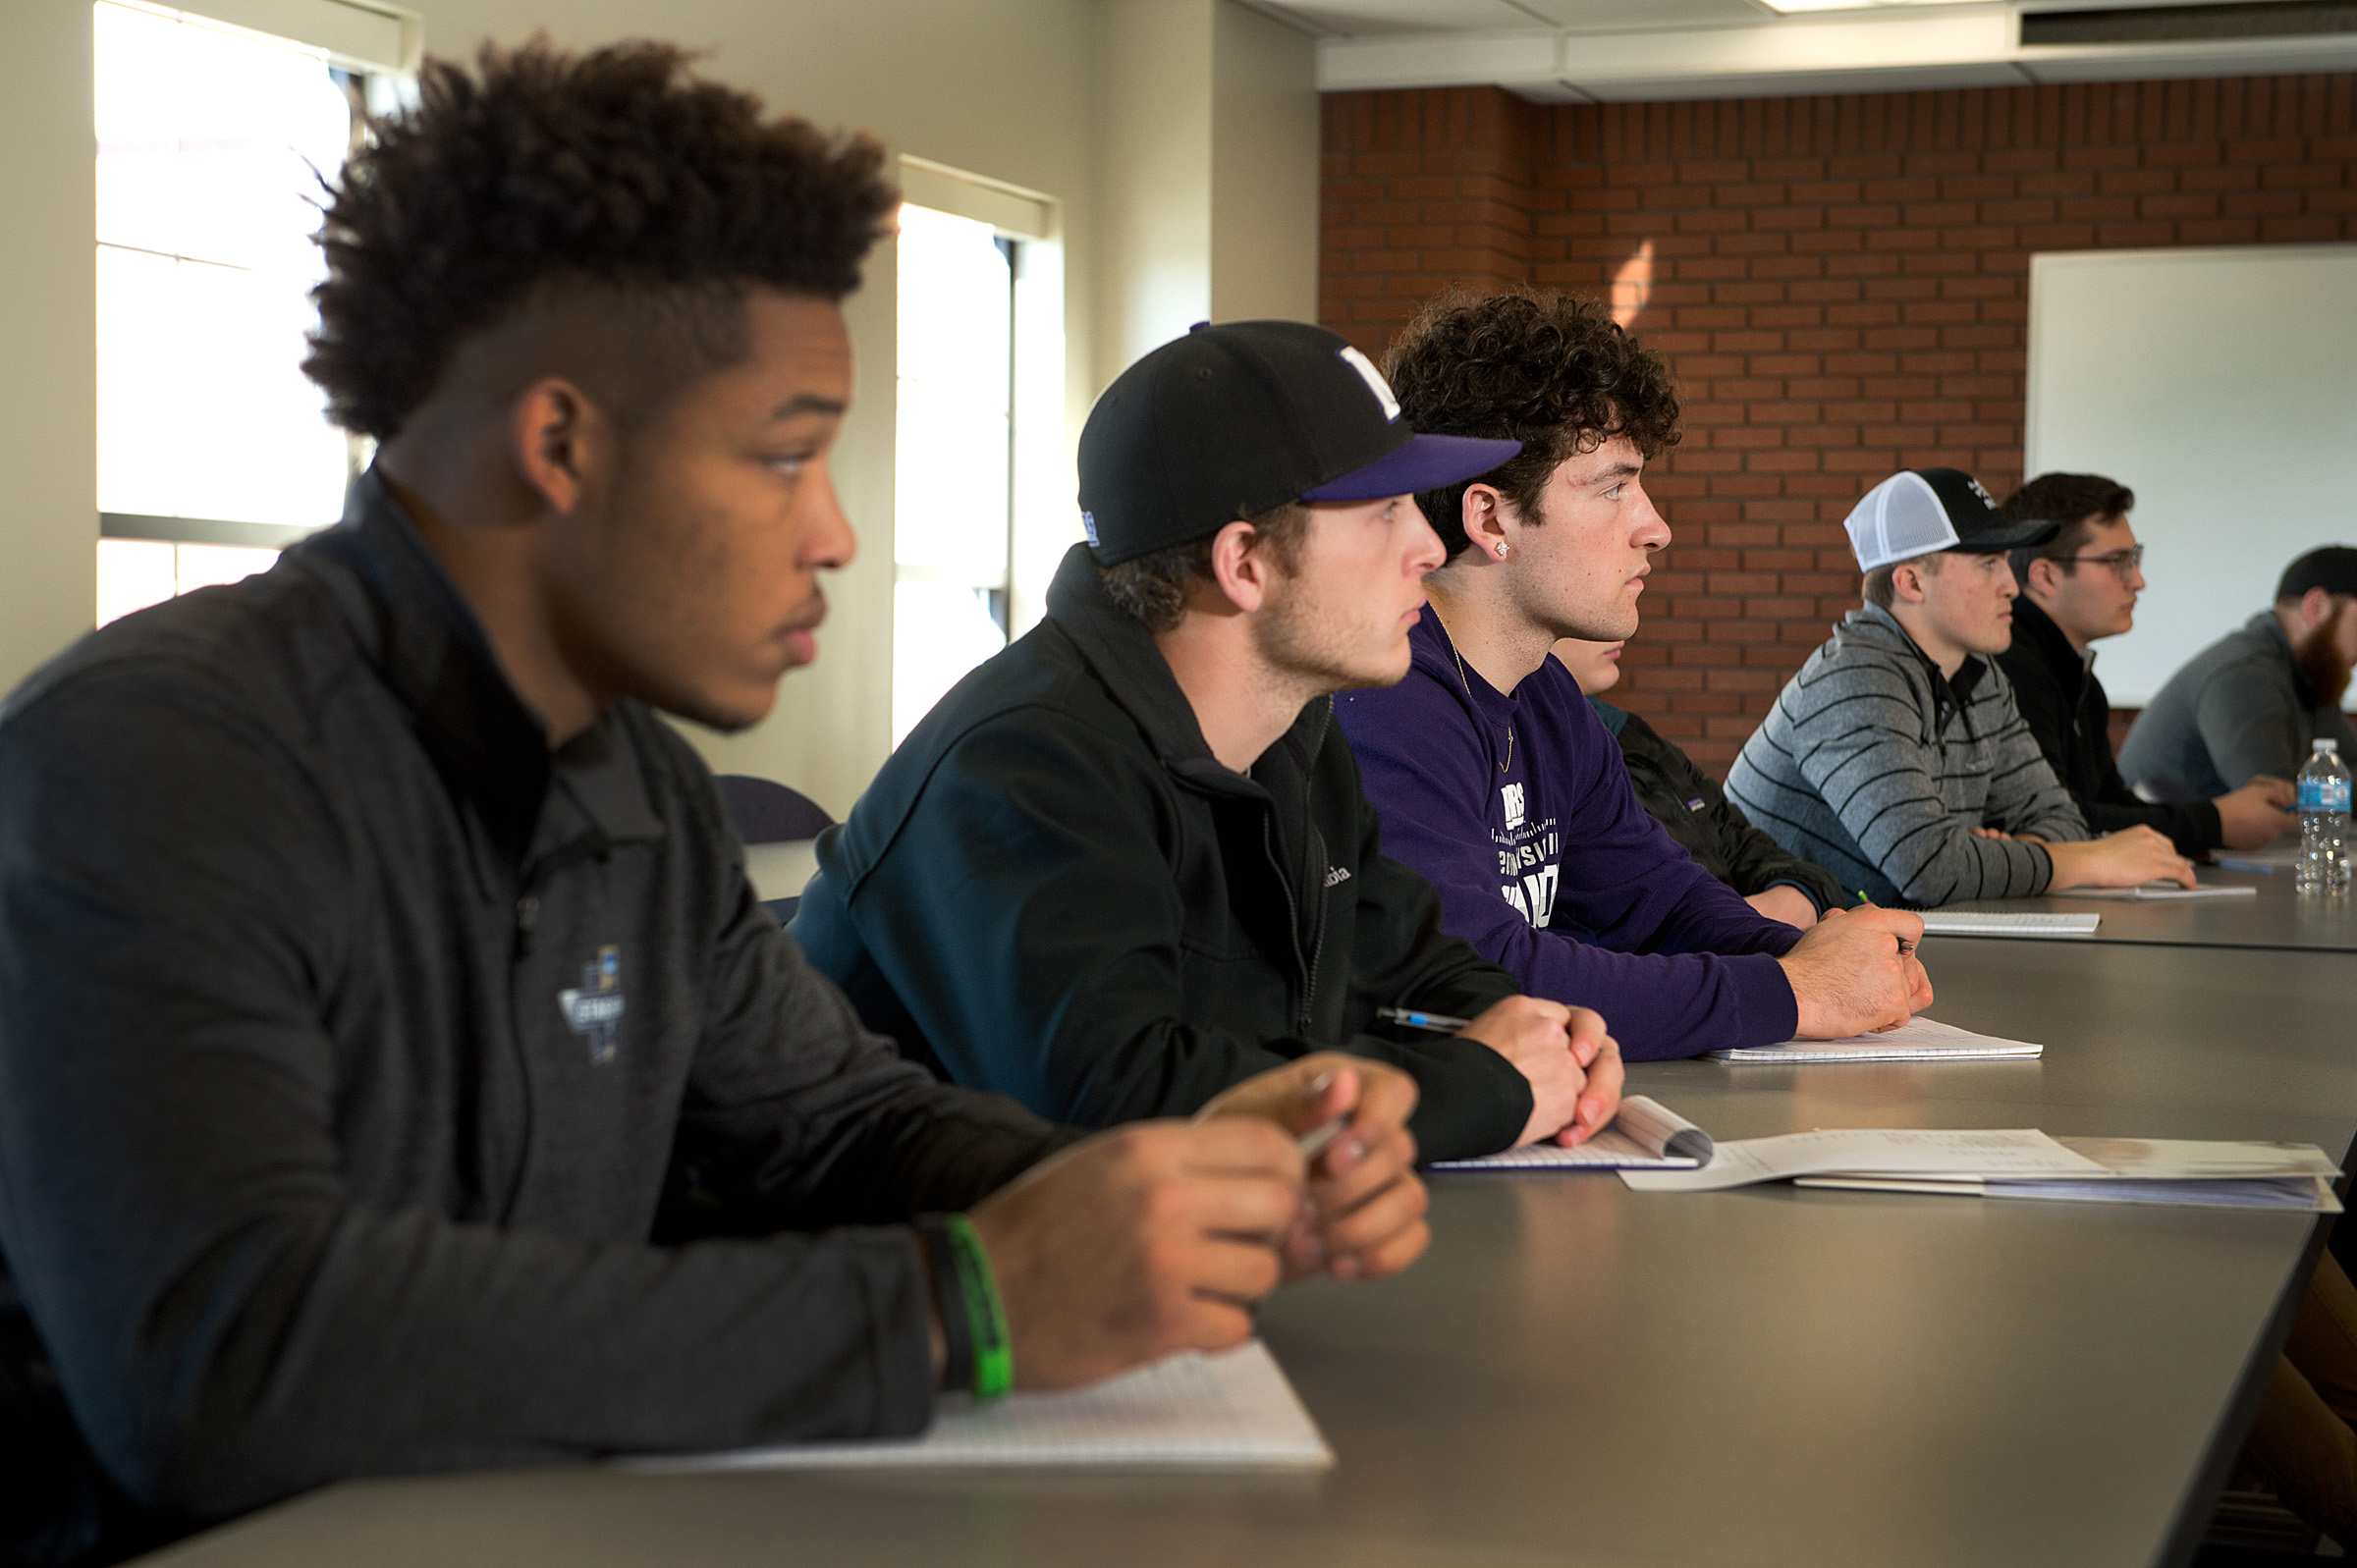 University of Mount Union students in classroom.